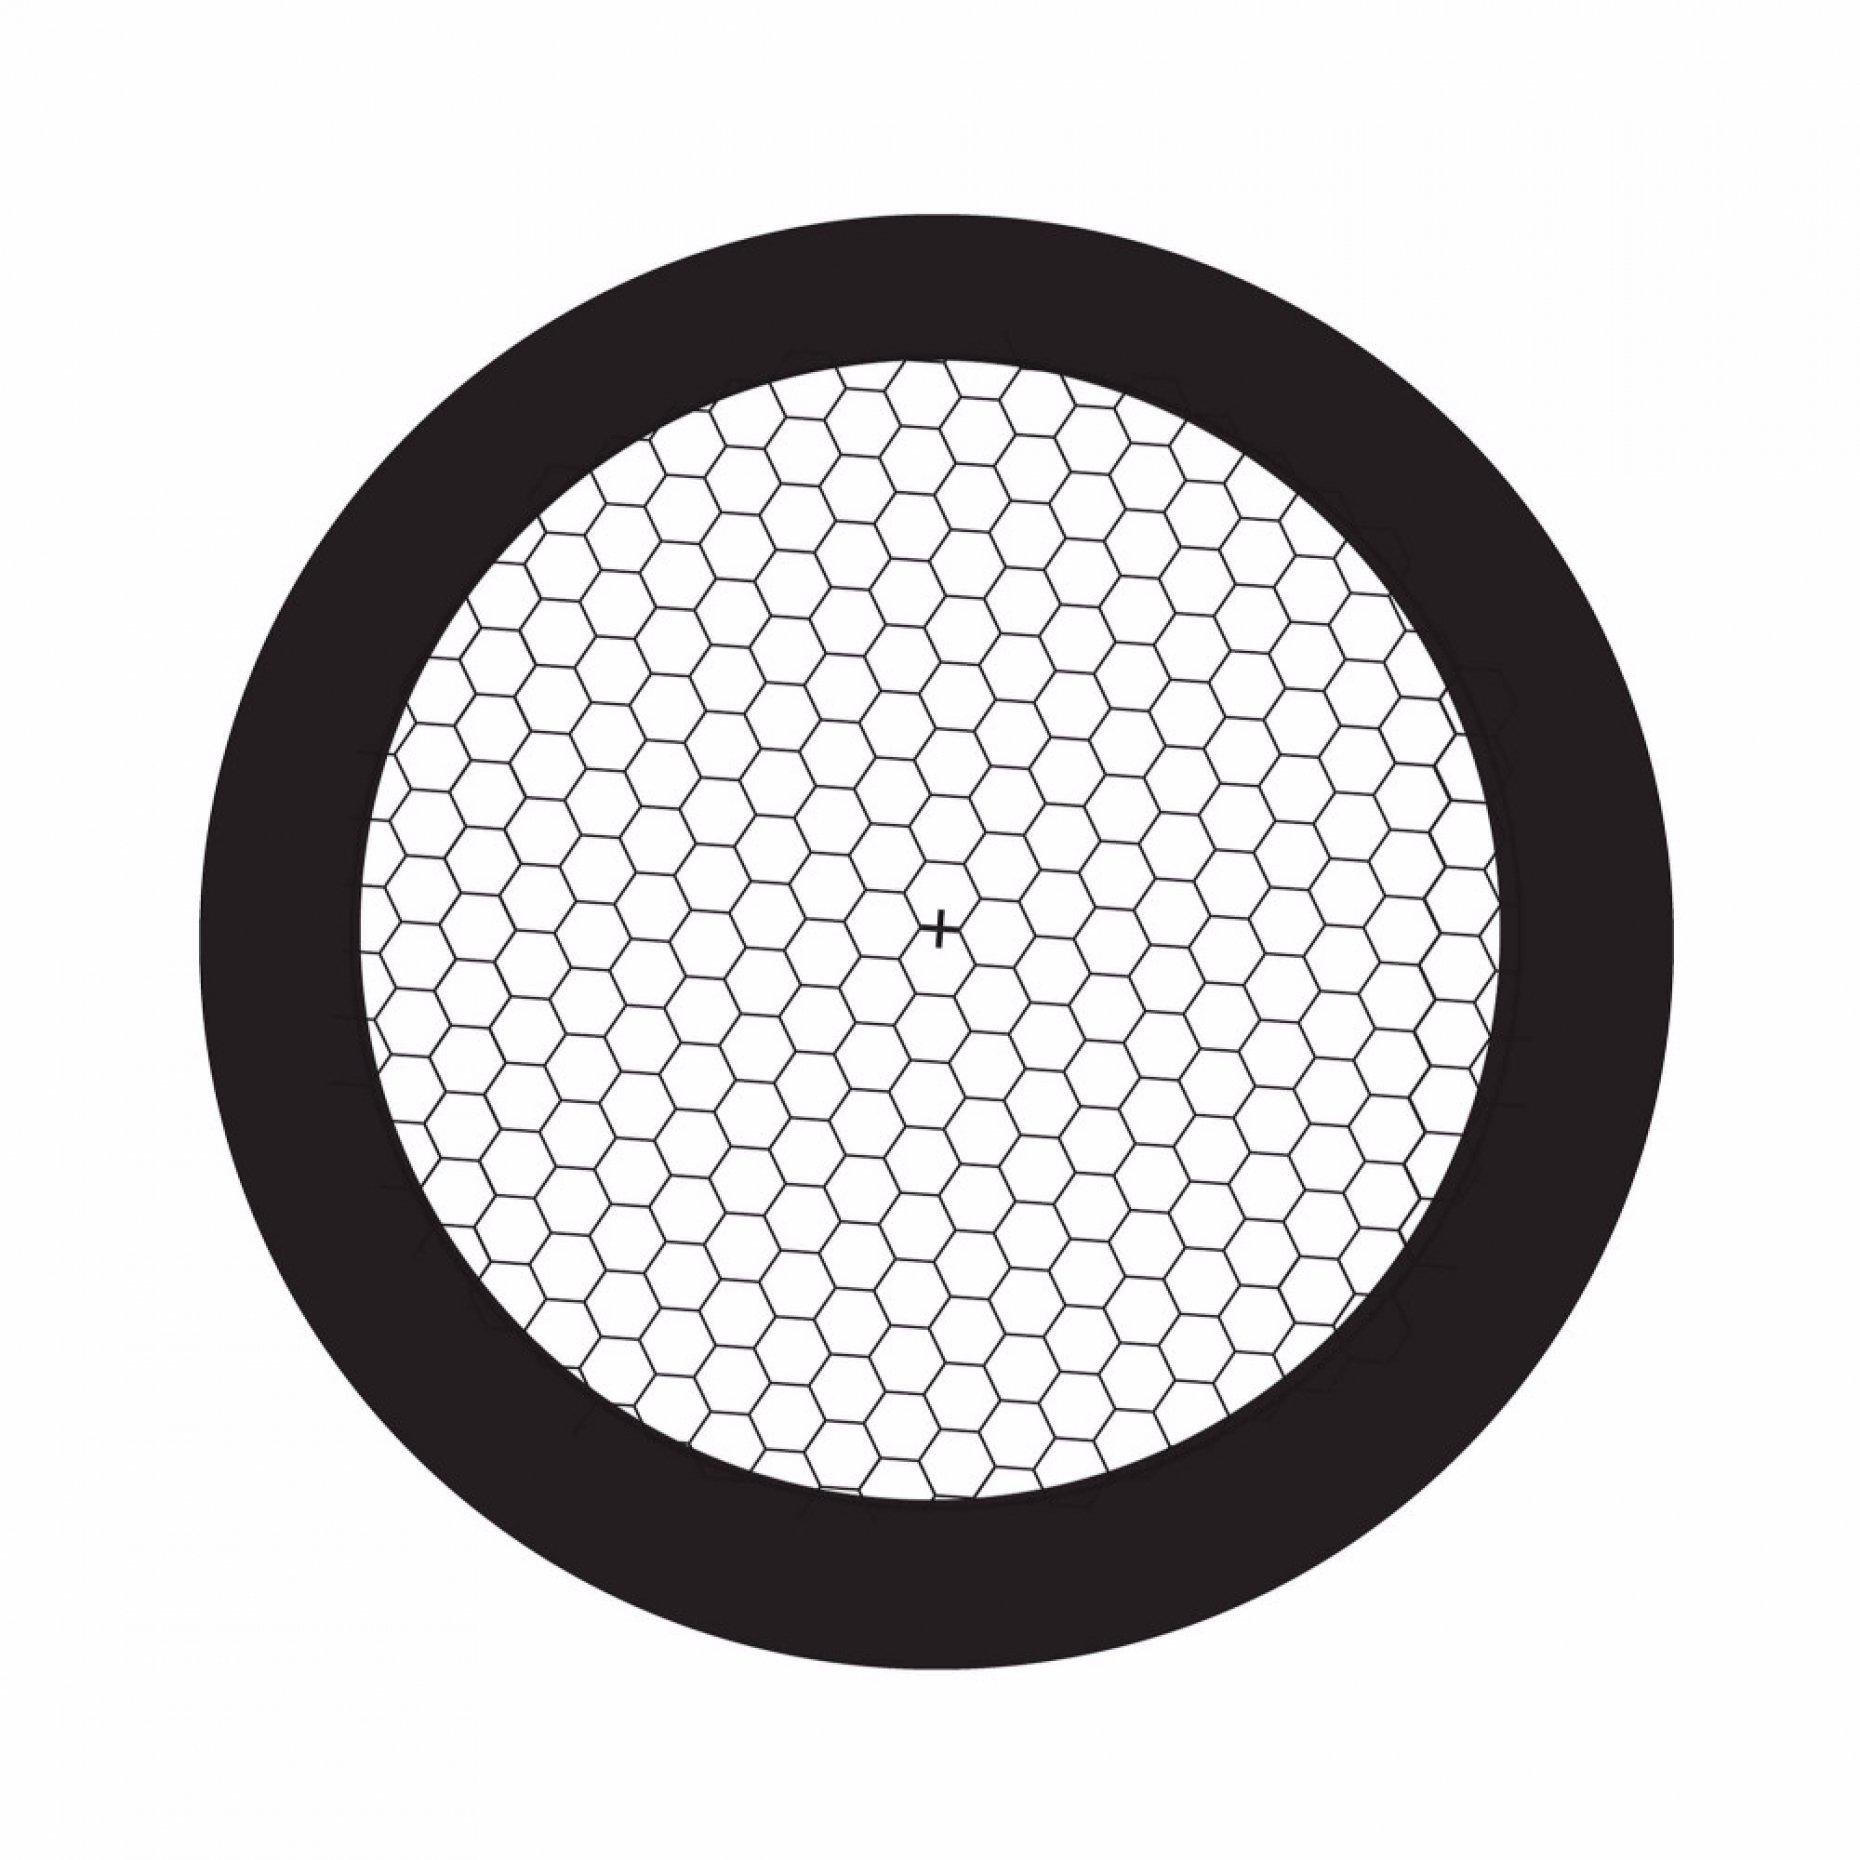 180 Mesh Hexagonal Grid